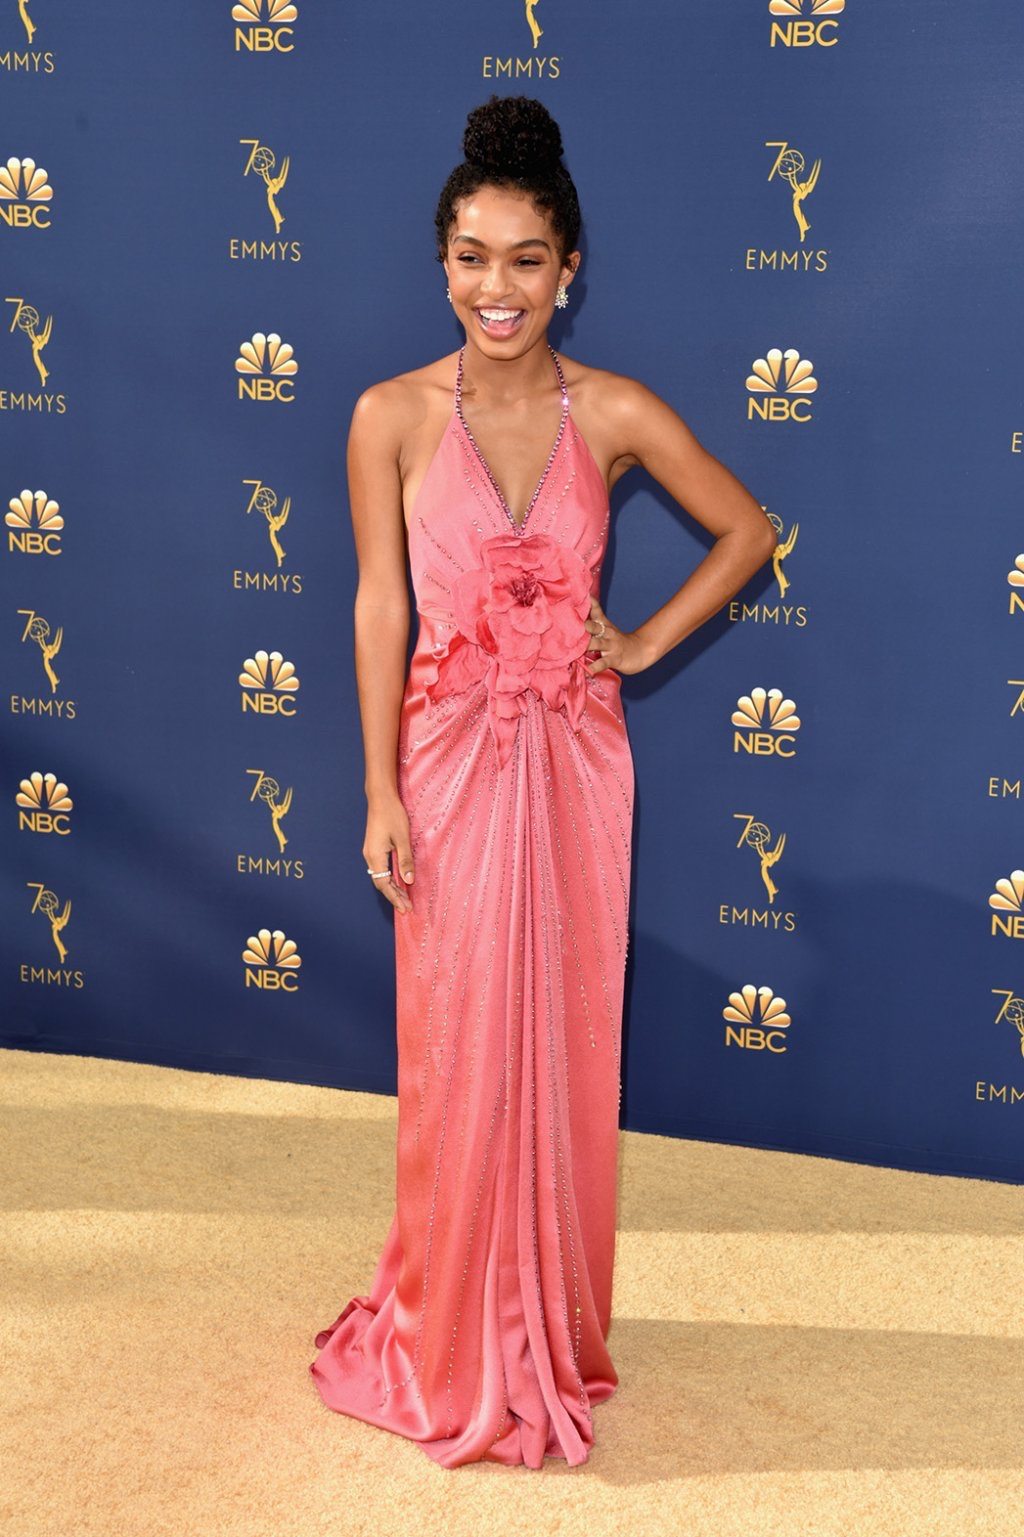 Yara Shahidi in Gucci, 70th Annual Primetime Emmy Awards, Betty White, Emmys 2018, Fashion, Featured, Glenn Weiss, Hannah Gadsby, highlights, Jav Svendsen, Online Exclusive, Style, The Marvellous Mrs. Maisel, top moments, We solved it, Diversity